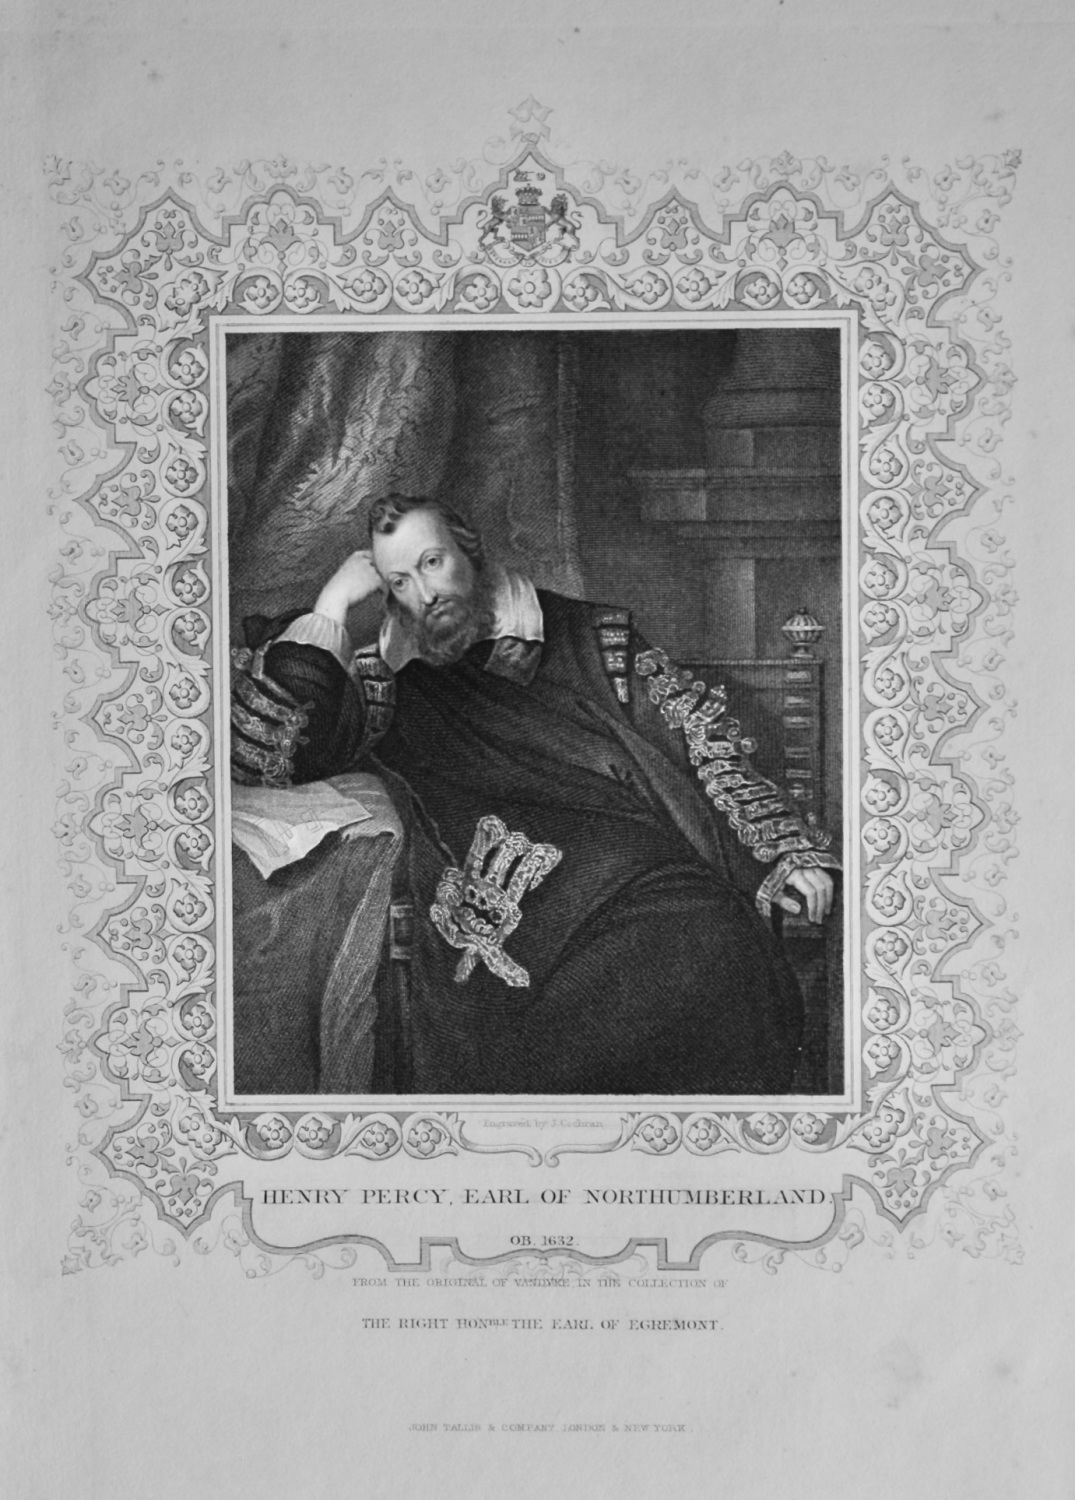 Henry Percy, Earl of Northumberland.